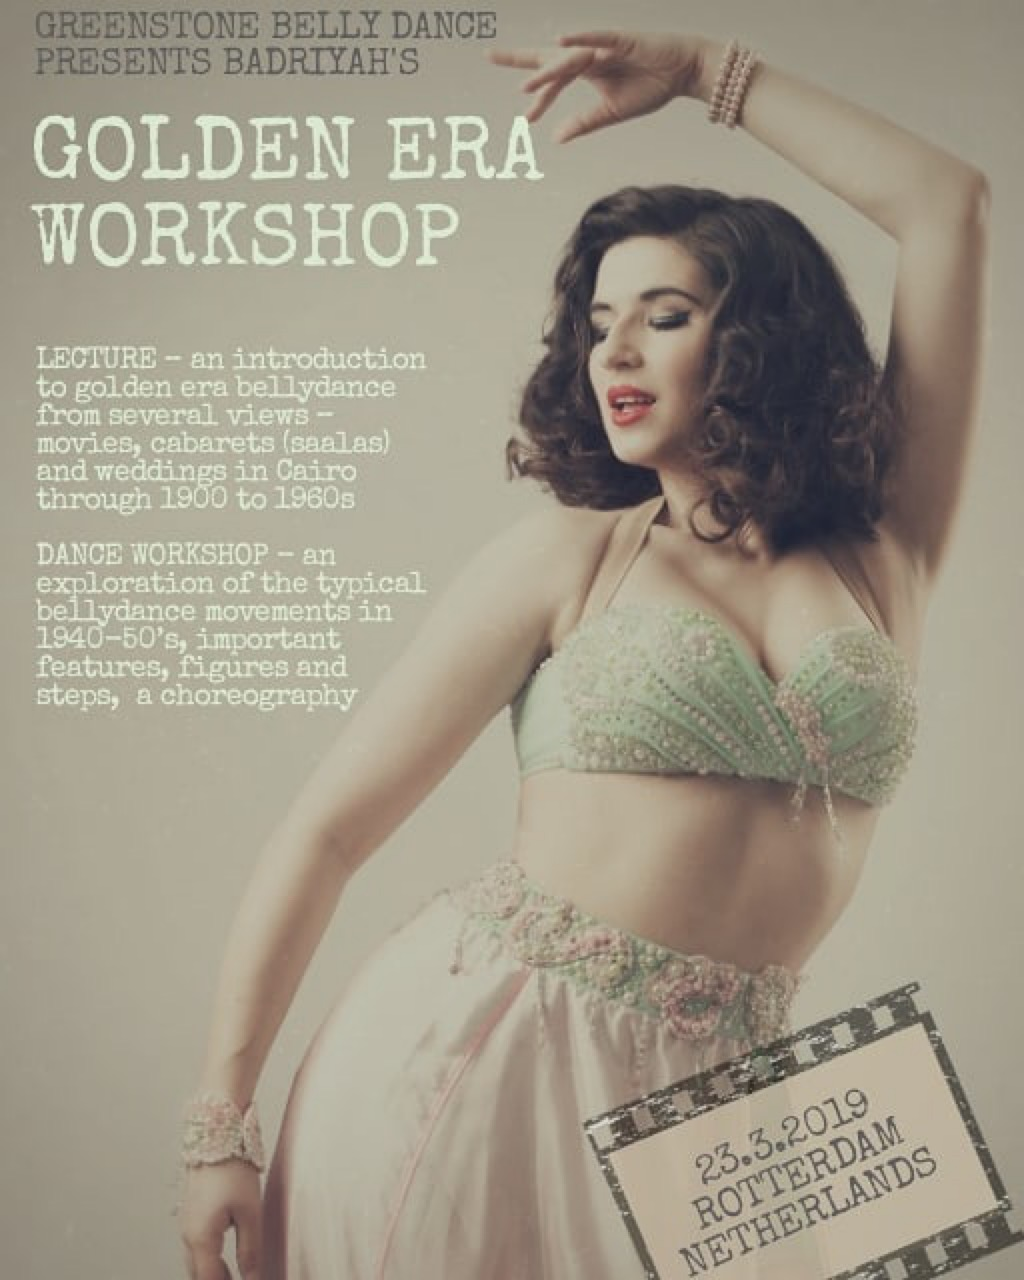 Learn about Golden Era Belly Dance in Rotterdam with Badriyah, hosted by Greenstone Belly Dance